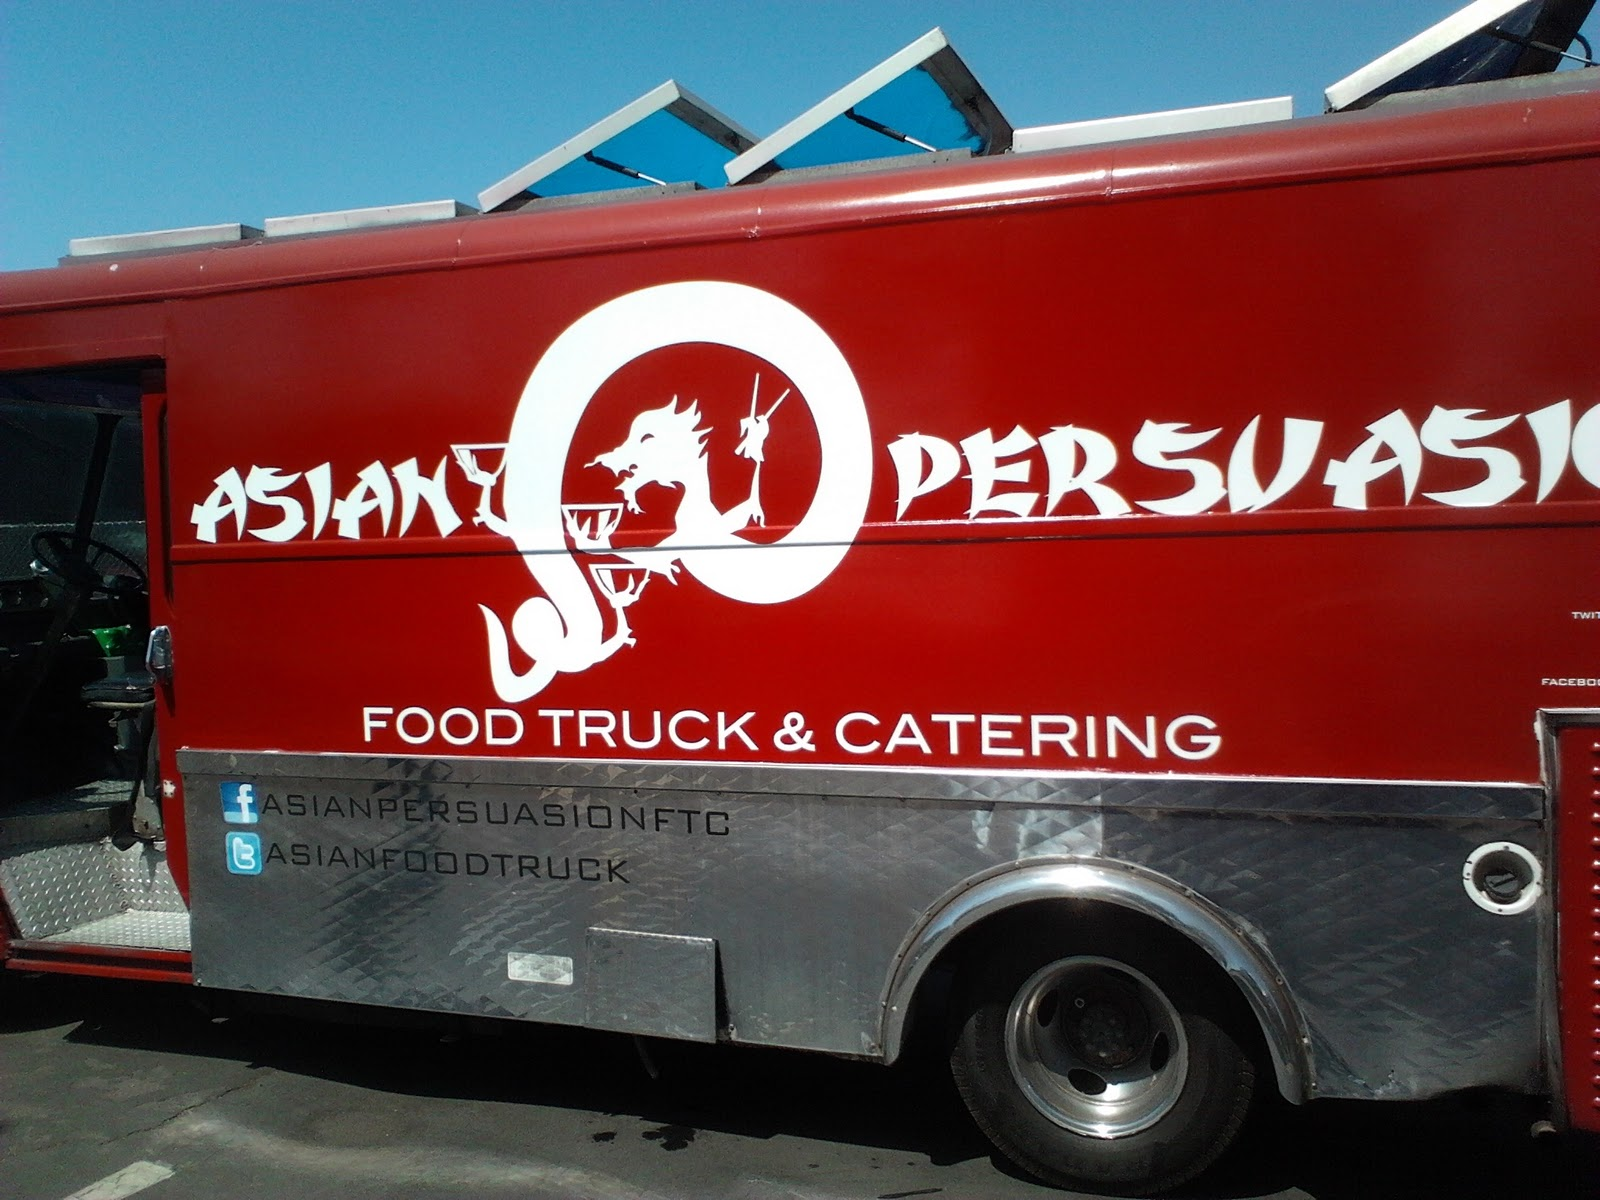 Japanese Cuisine Food Truck Food Truck Amy Reviews Asian Persuasion Bbq Chicken